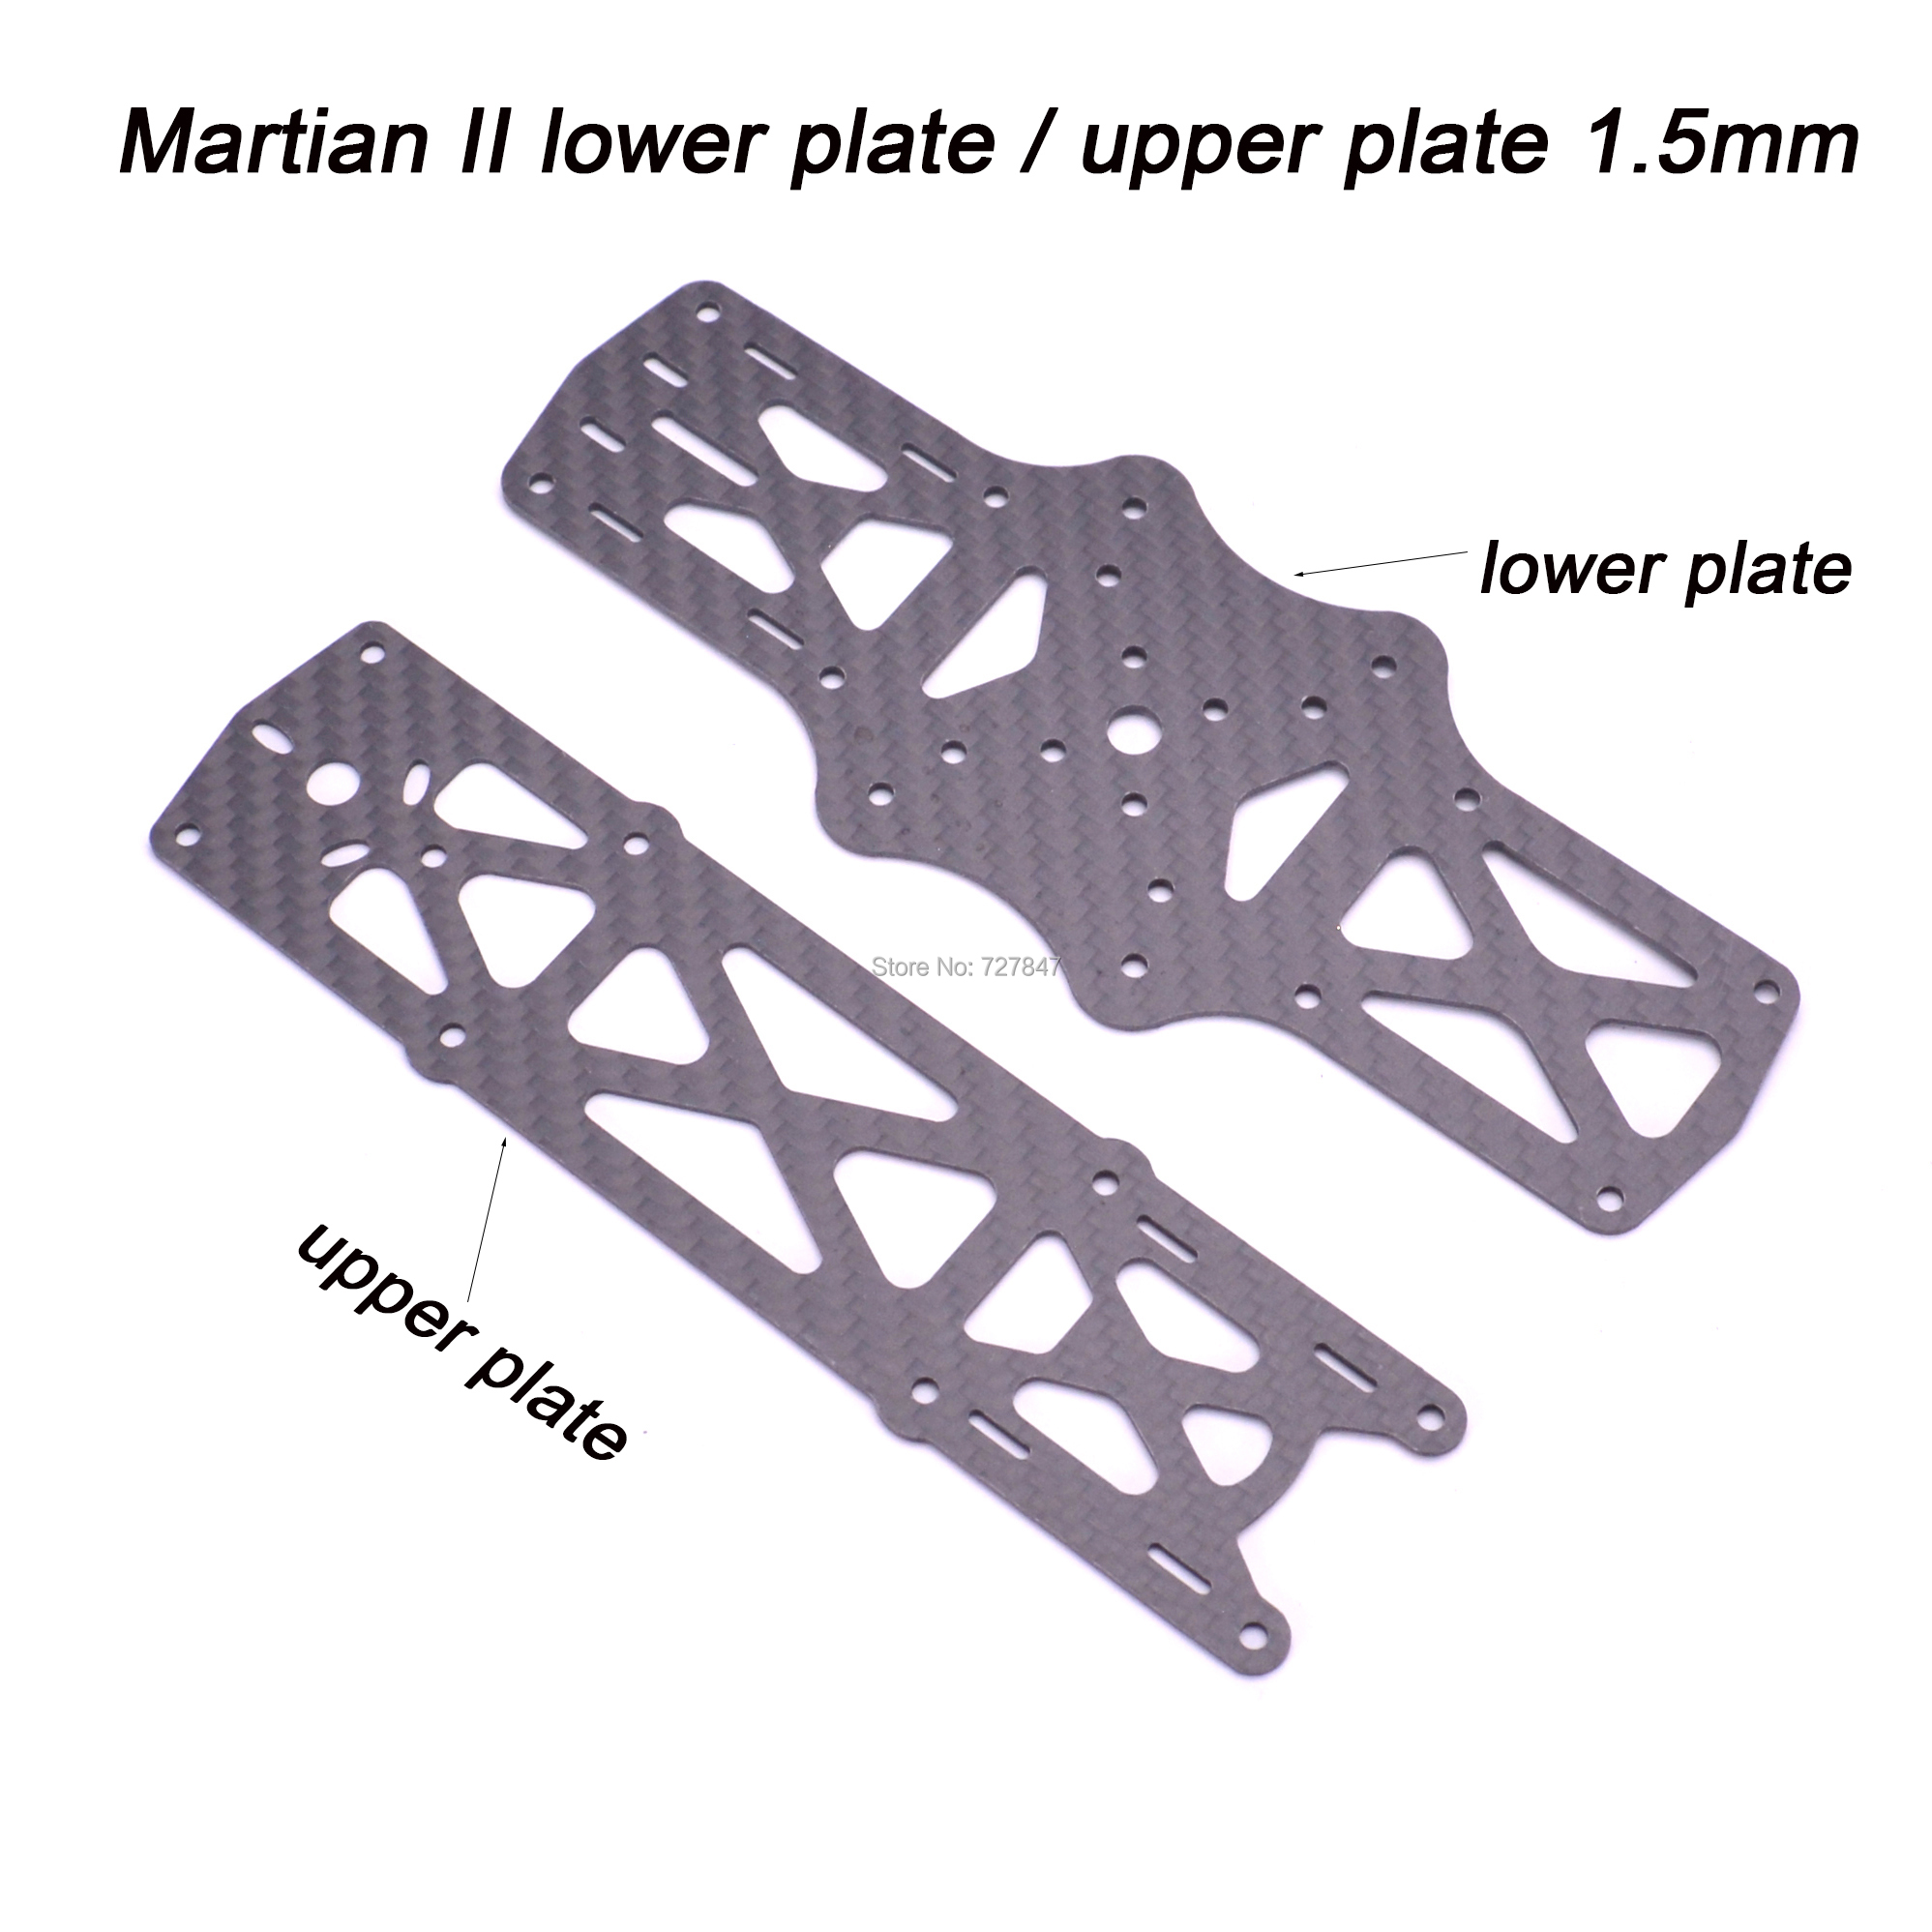 Reptile Martian II 1.5mm Top Upper / Bottom Lower Board Plate Spare Part for Martian II RC Drone FPV Accessories